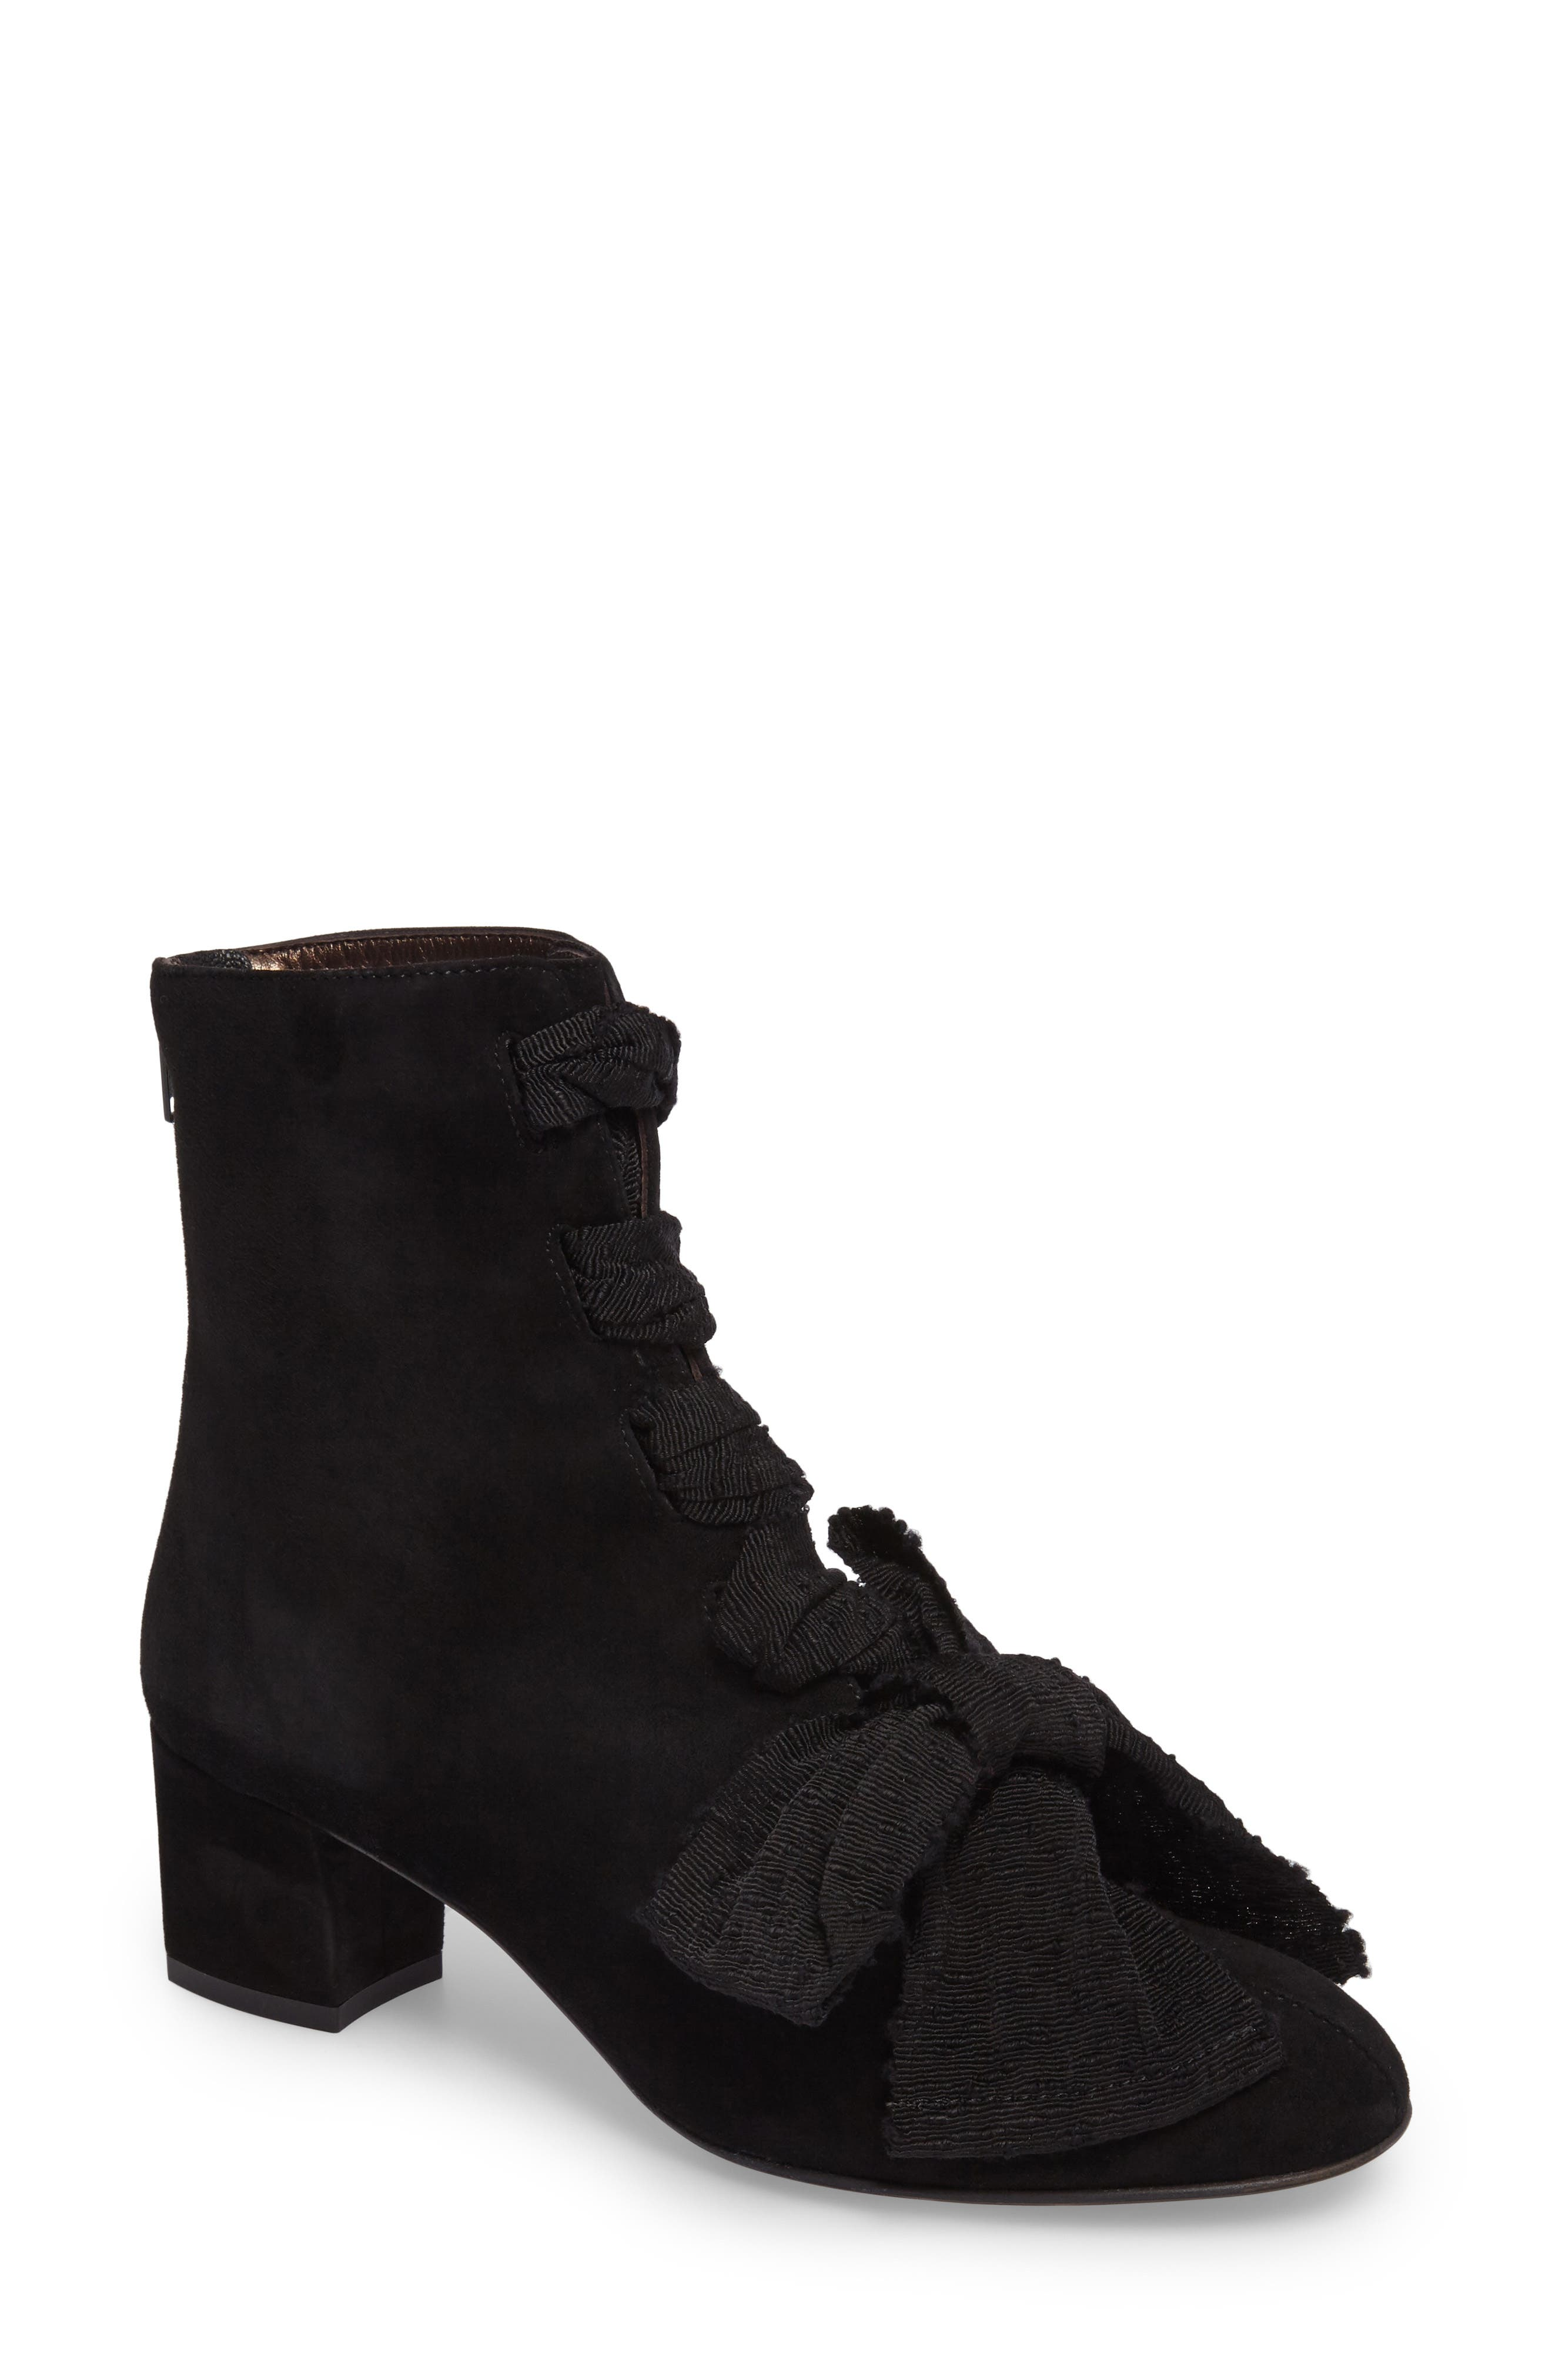 Main Image - AGL Bow Bootie (Women)